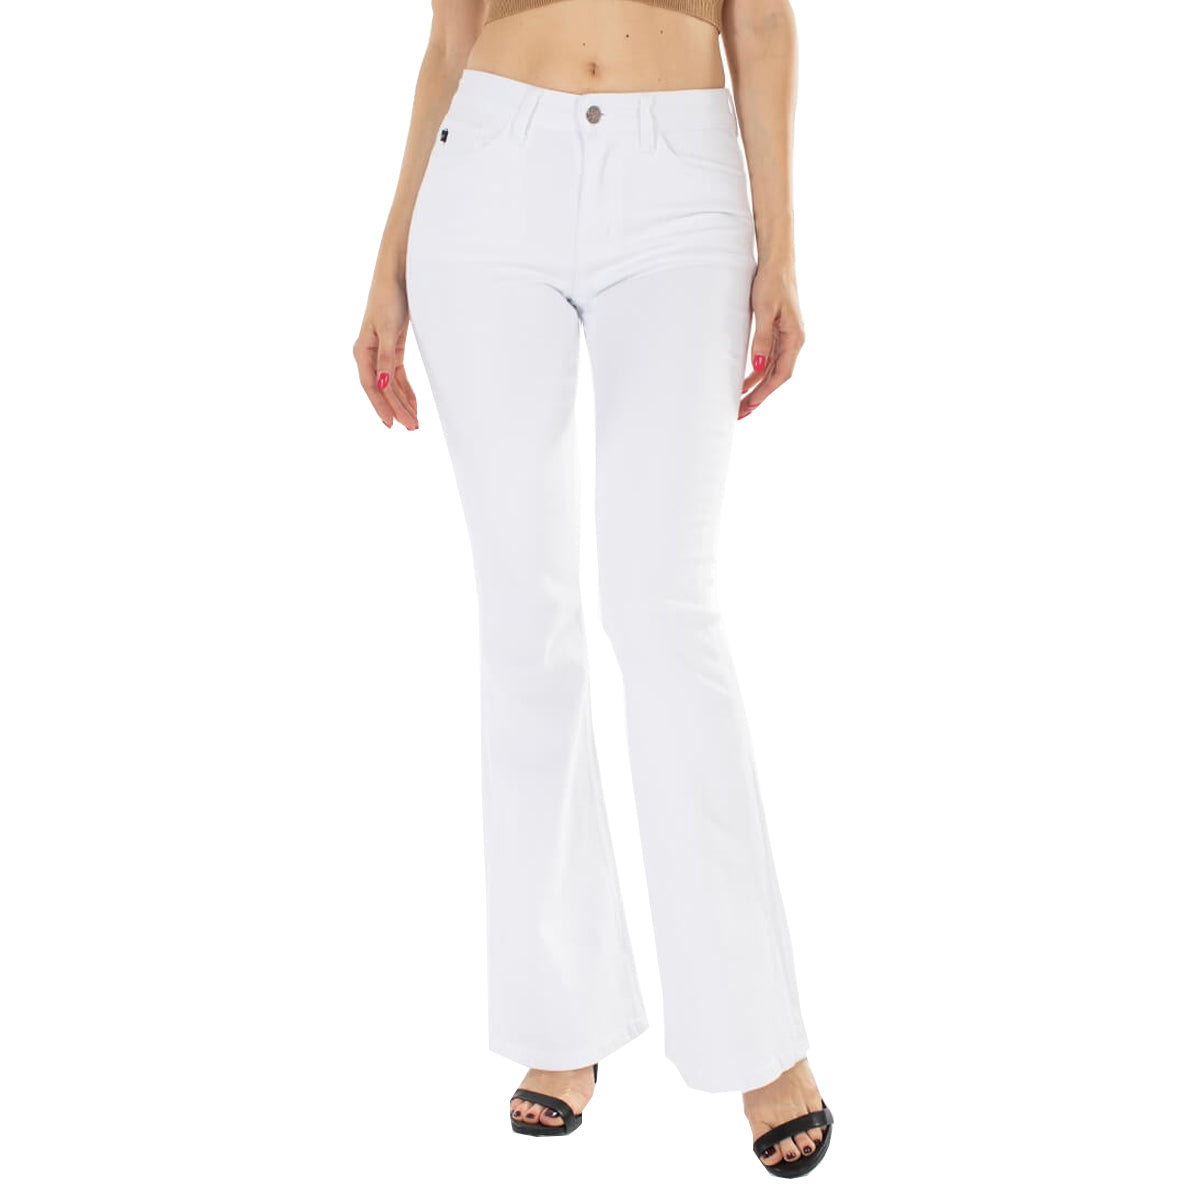 Kan Can Women's Alaska Mid Rise Flare Jeans - White